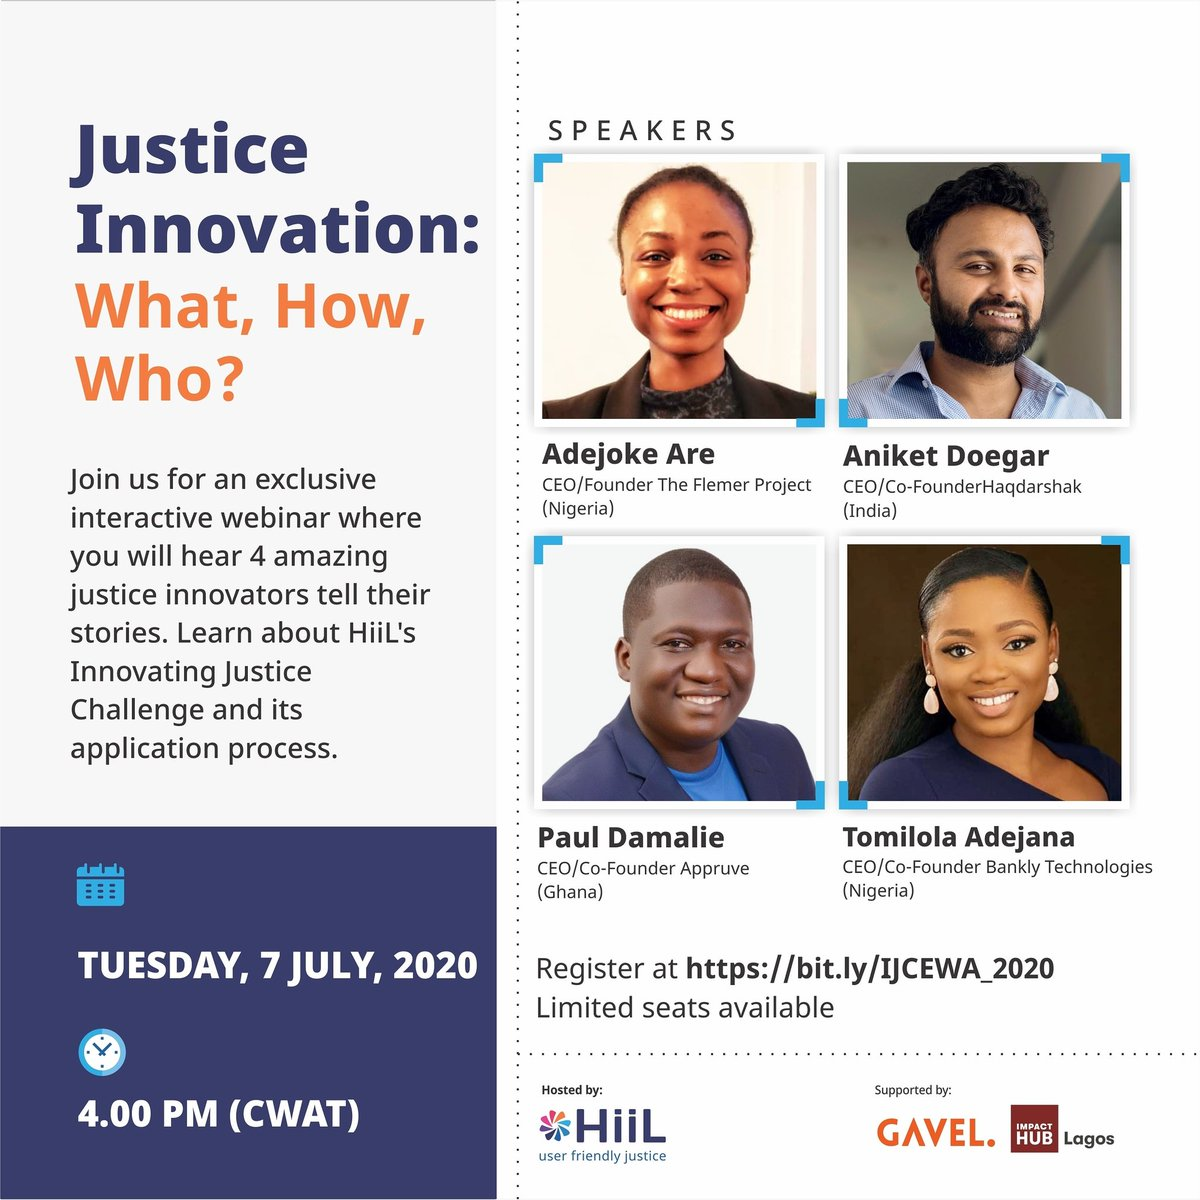 Got questions about our Innovating Justice Challenge and its application process?  Join us for an exclusive interactive webinar on Tuesday, 7 July by 4pm where all your questions would be answered.  Register here: https://t.co/8oTBDtKKct  #justinnovate20 #accesstojustice https://t.co/tWUqWpOMfh